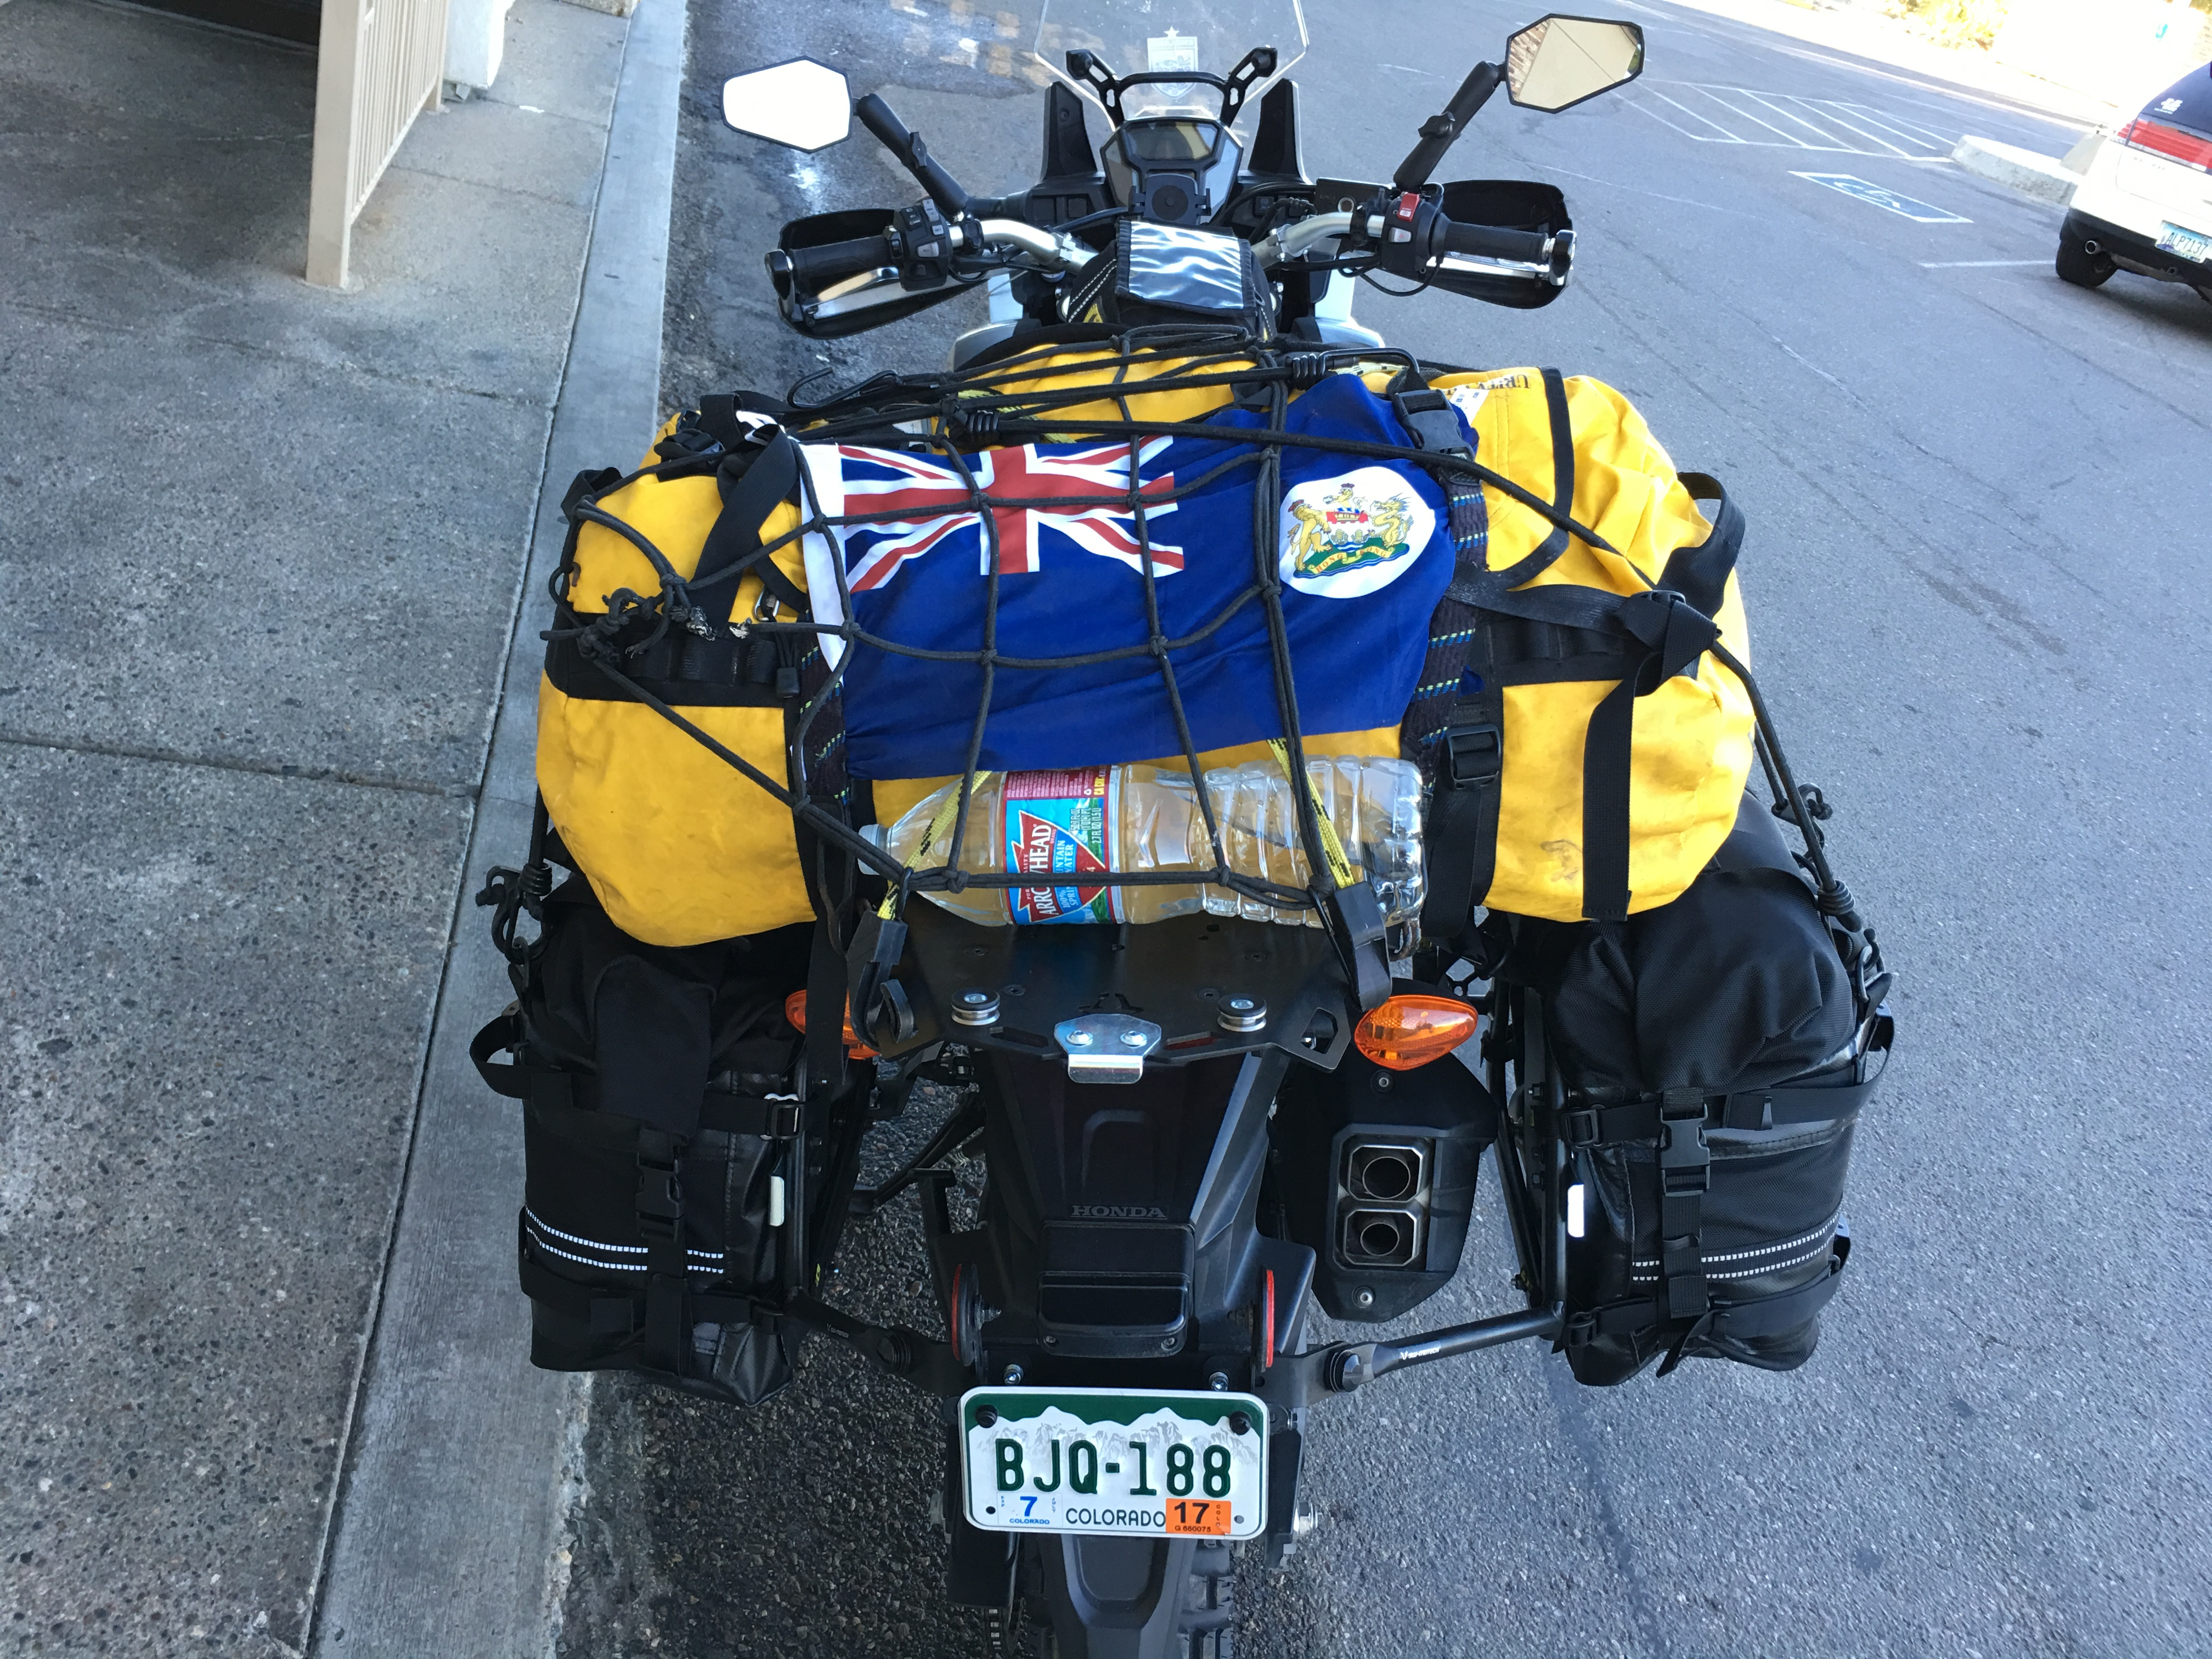 Honda Africa Twin Loaded Upu2026 And A Former Hong Kong Flag For Good Measure